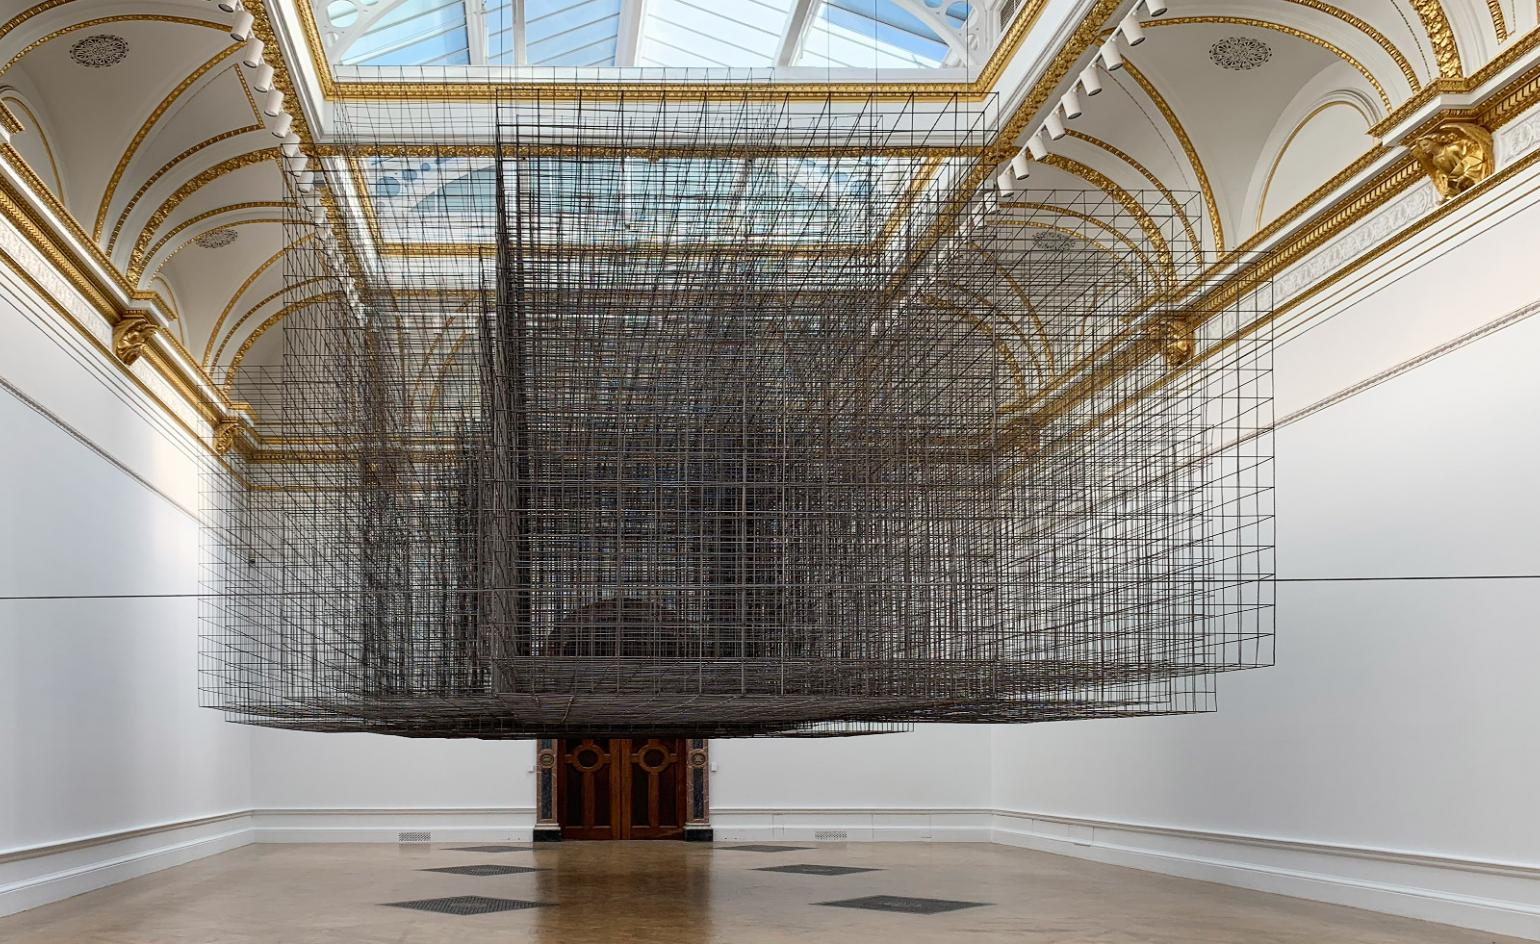 Steel yourself for metal guru Antony Gormley's Royal Academy blockbuster